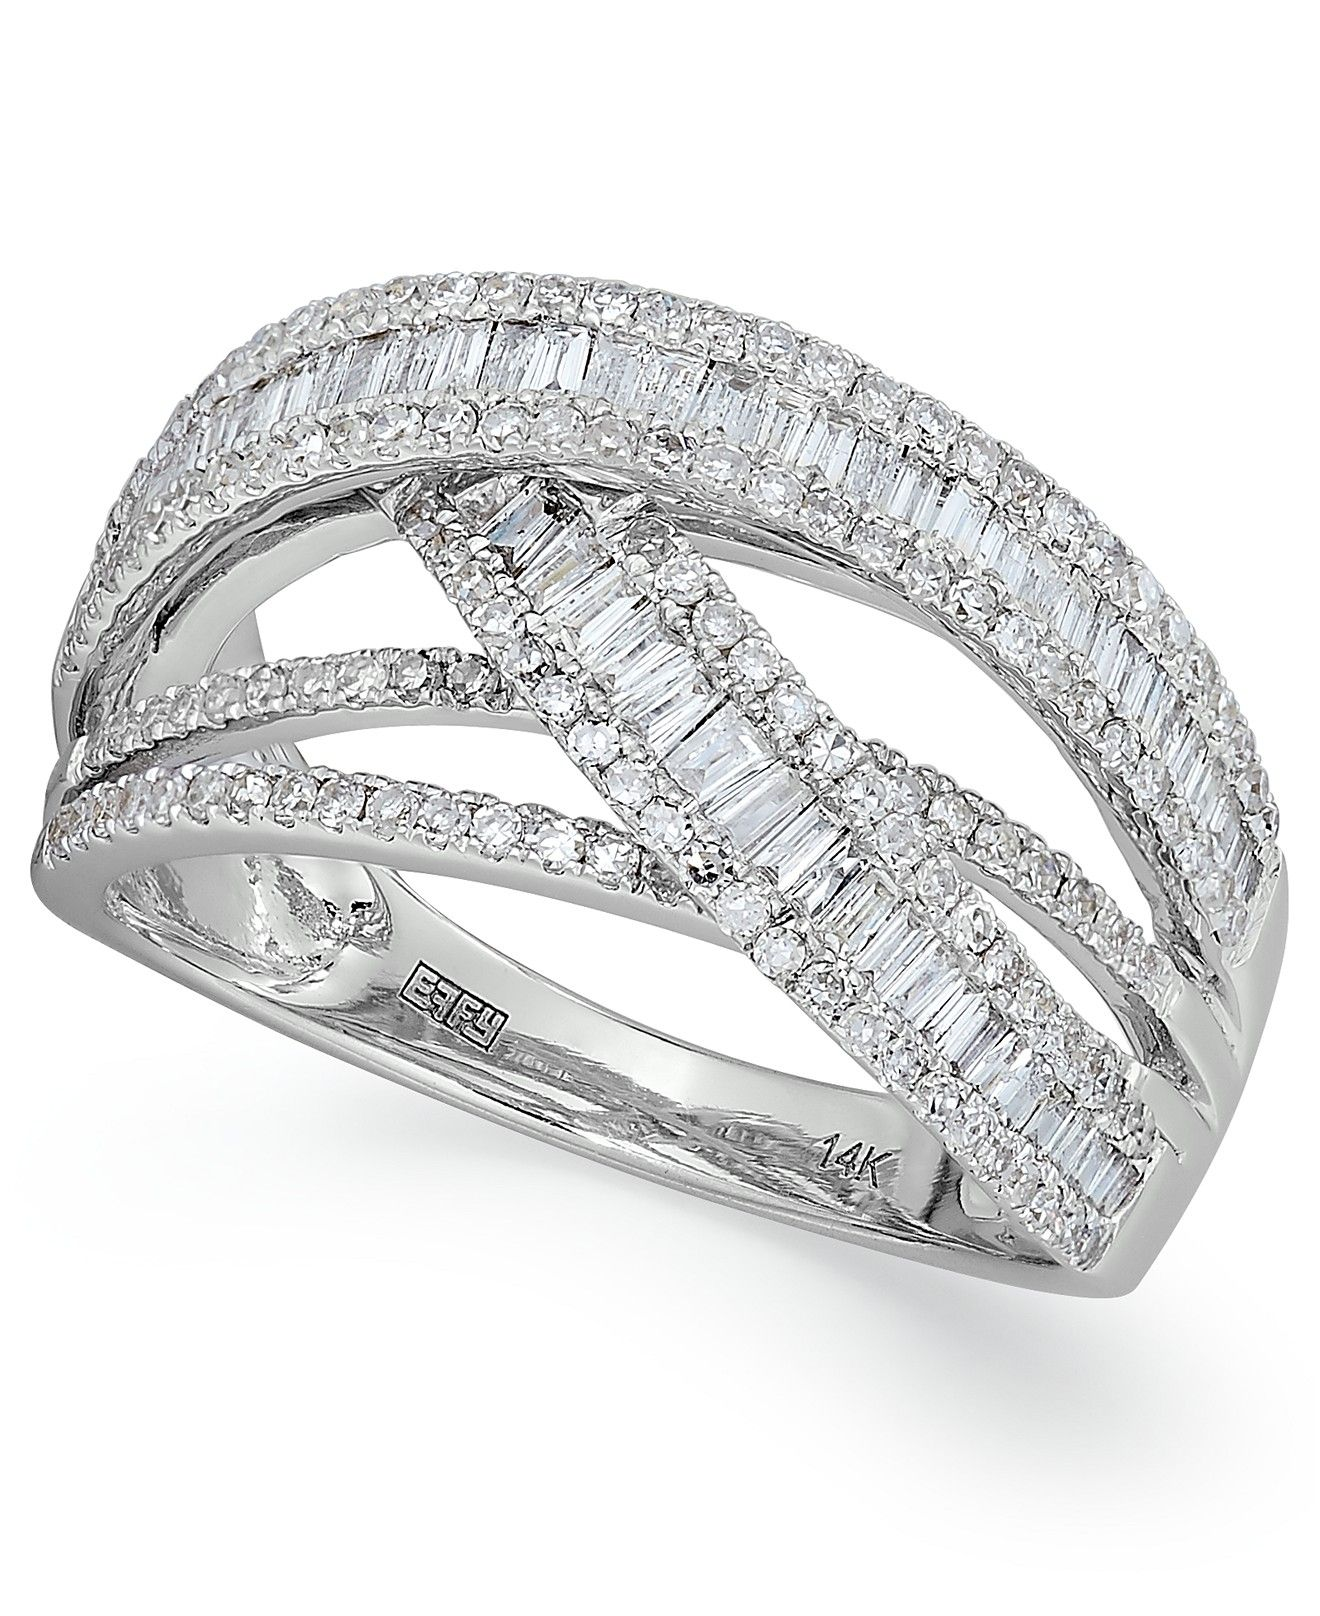 Classique By Effy Diamond Crossover Ring In 14k White Gold 1 Ct T W Rings Jewelry Watches Macy Crossover Diamond Ring Diamond Fine Diamond Jewelry